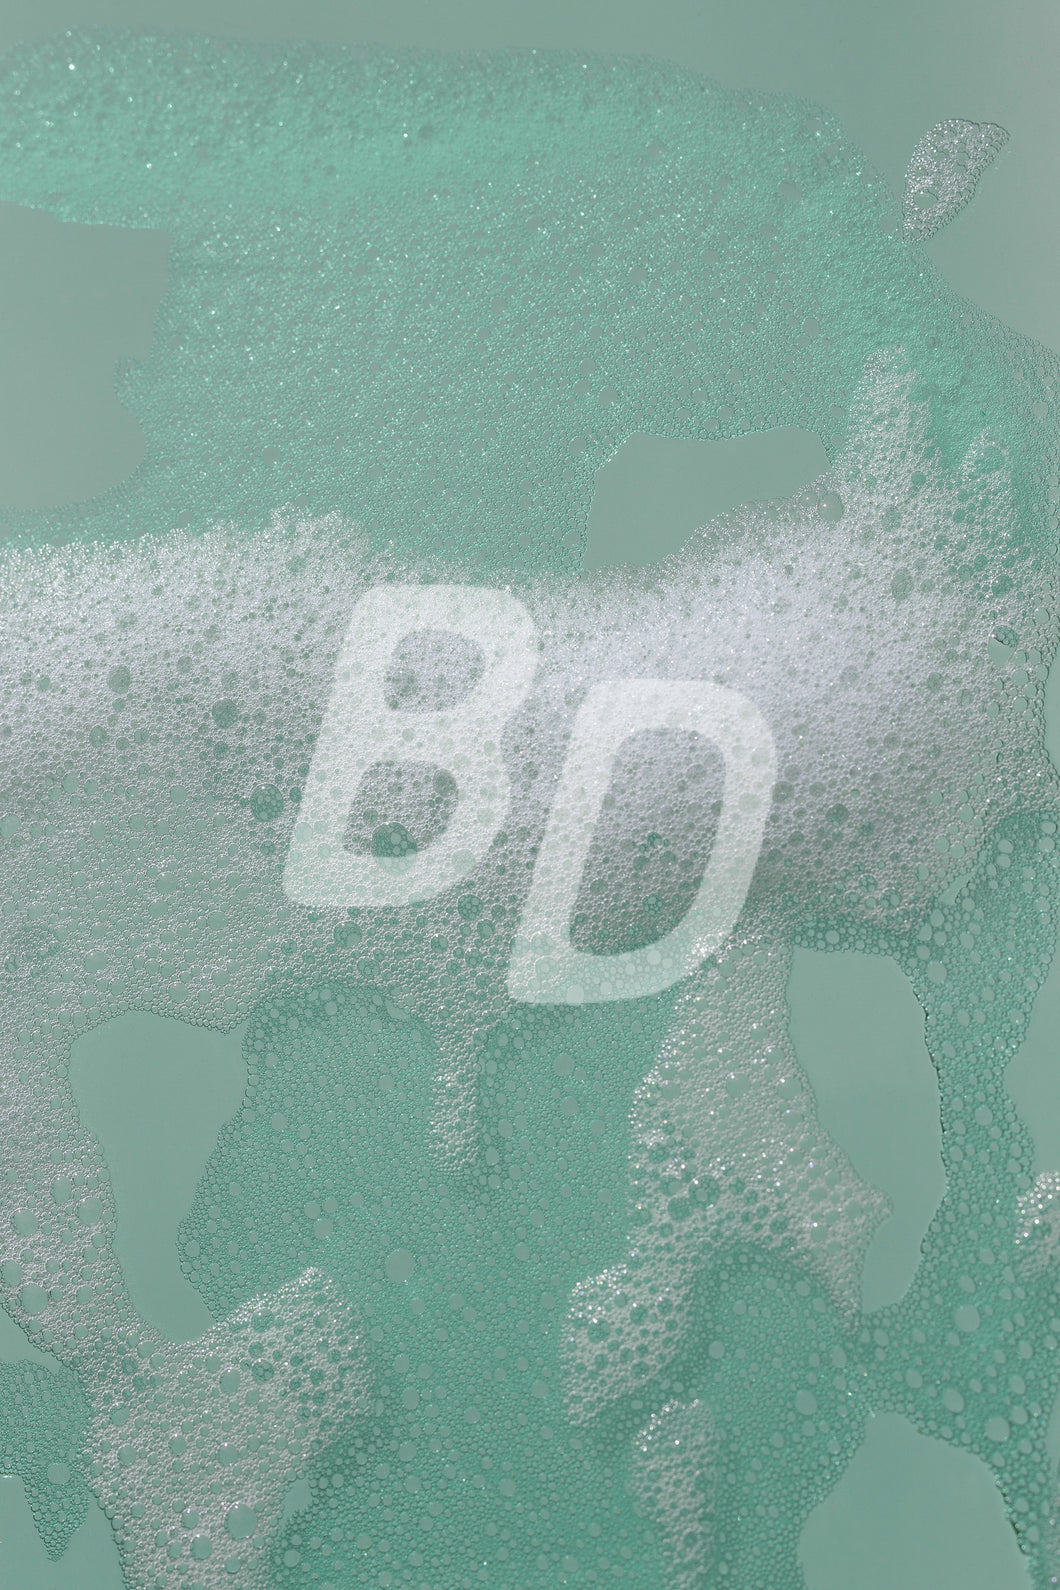 Bubble foam stock photo - backdropstock.com